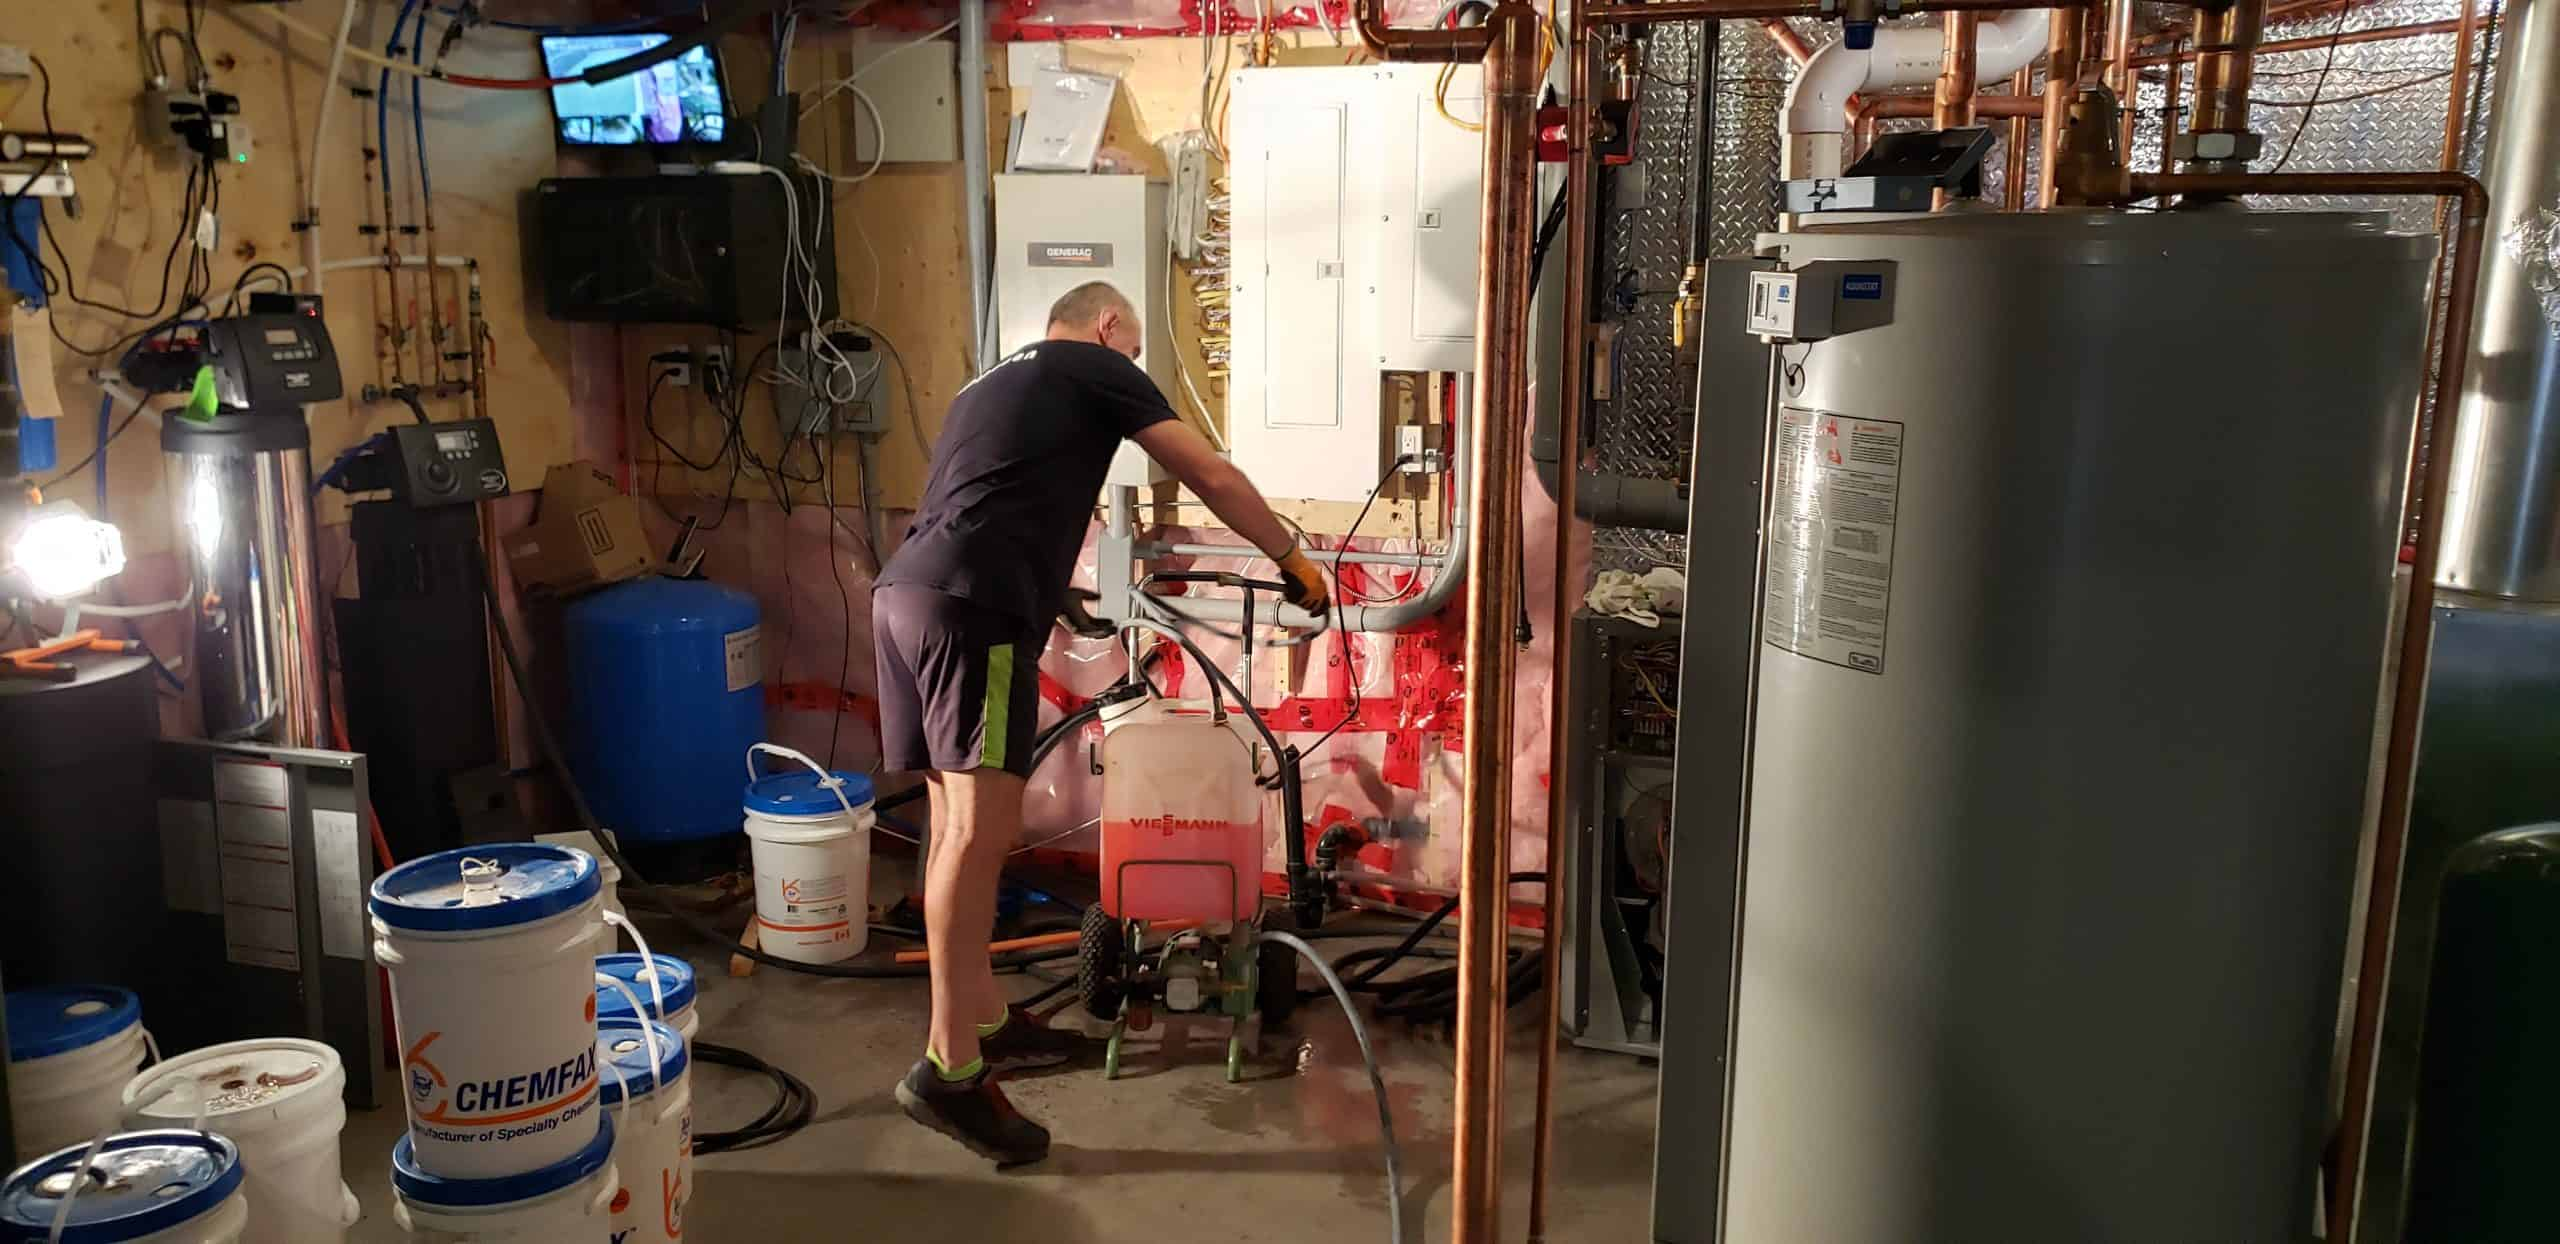 Purging the air from the floor heating system